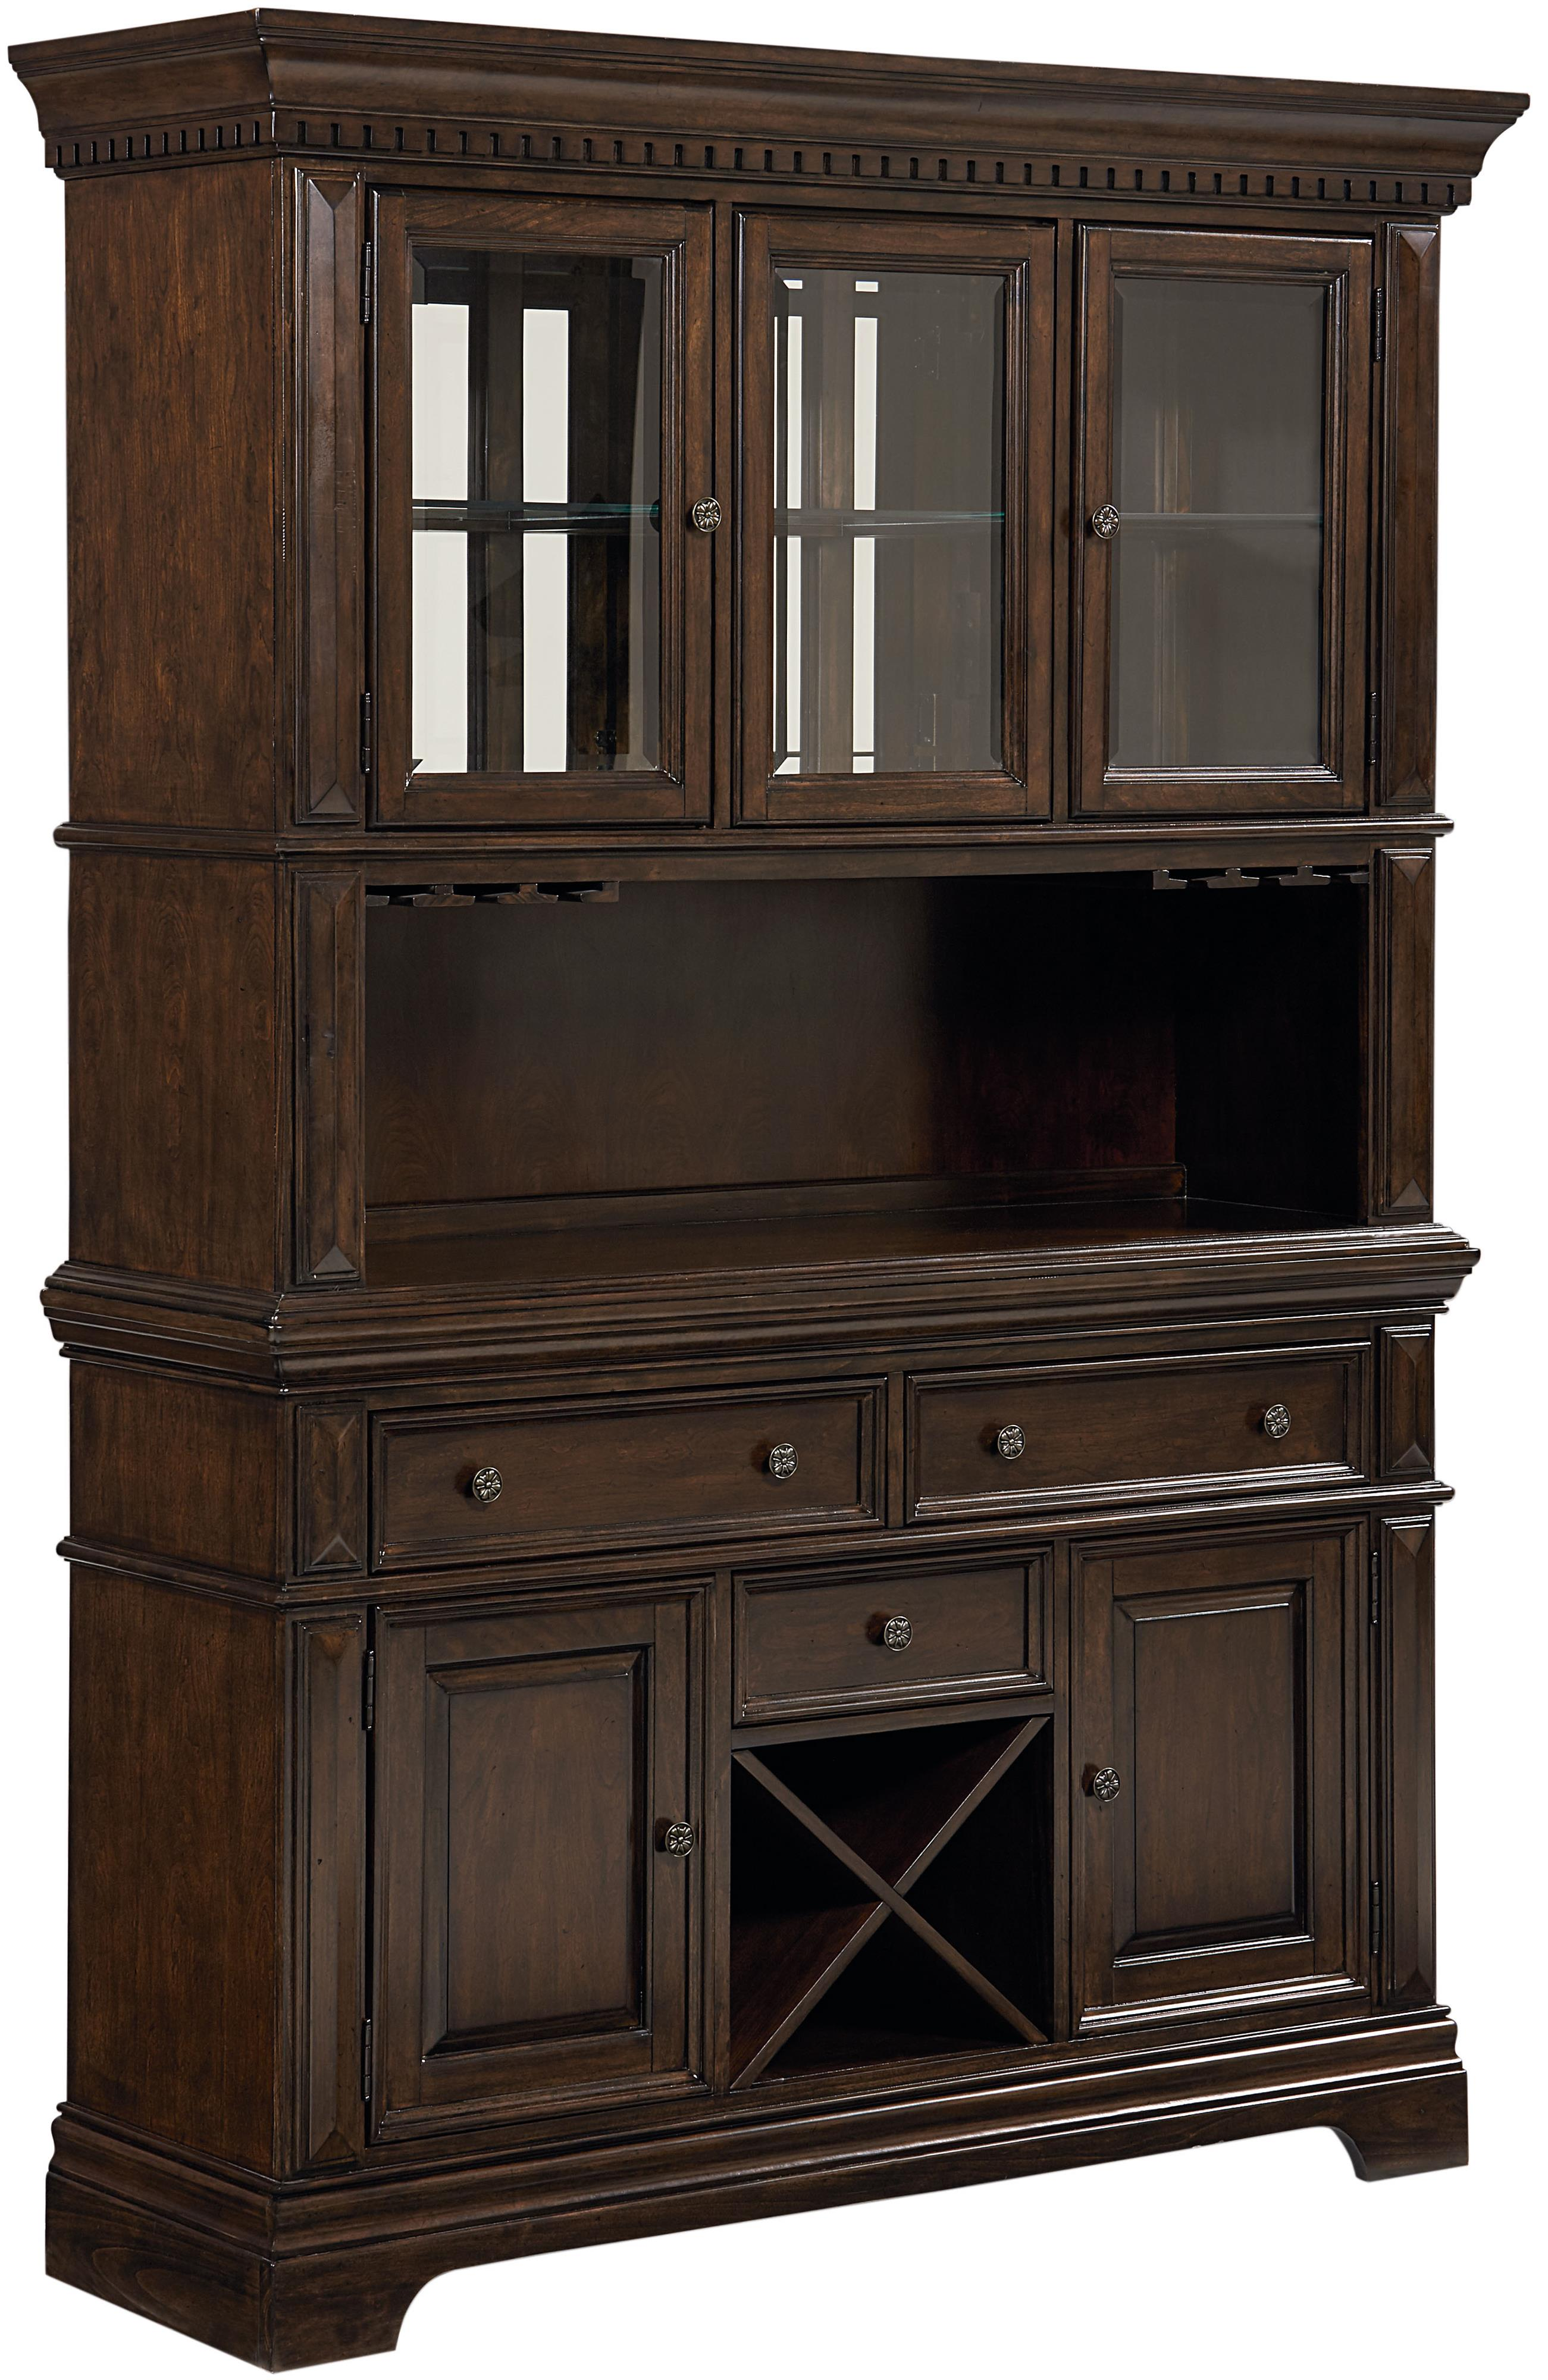 Dining room hutch with wine rack